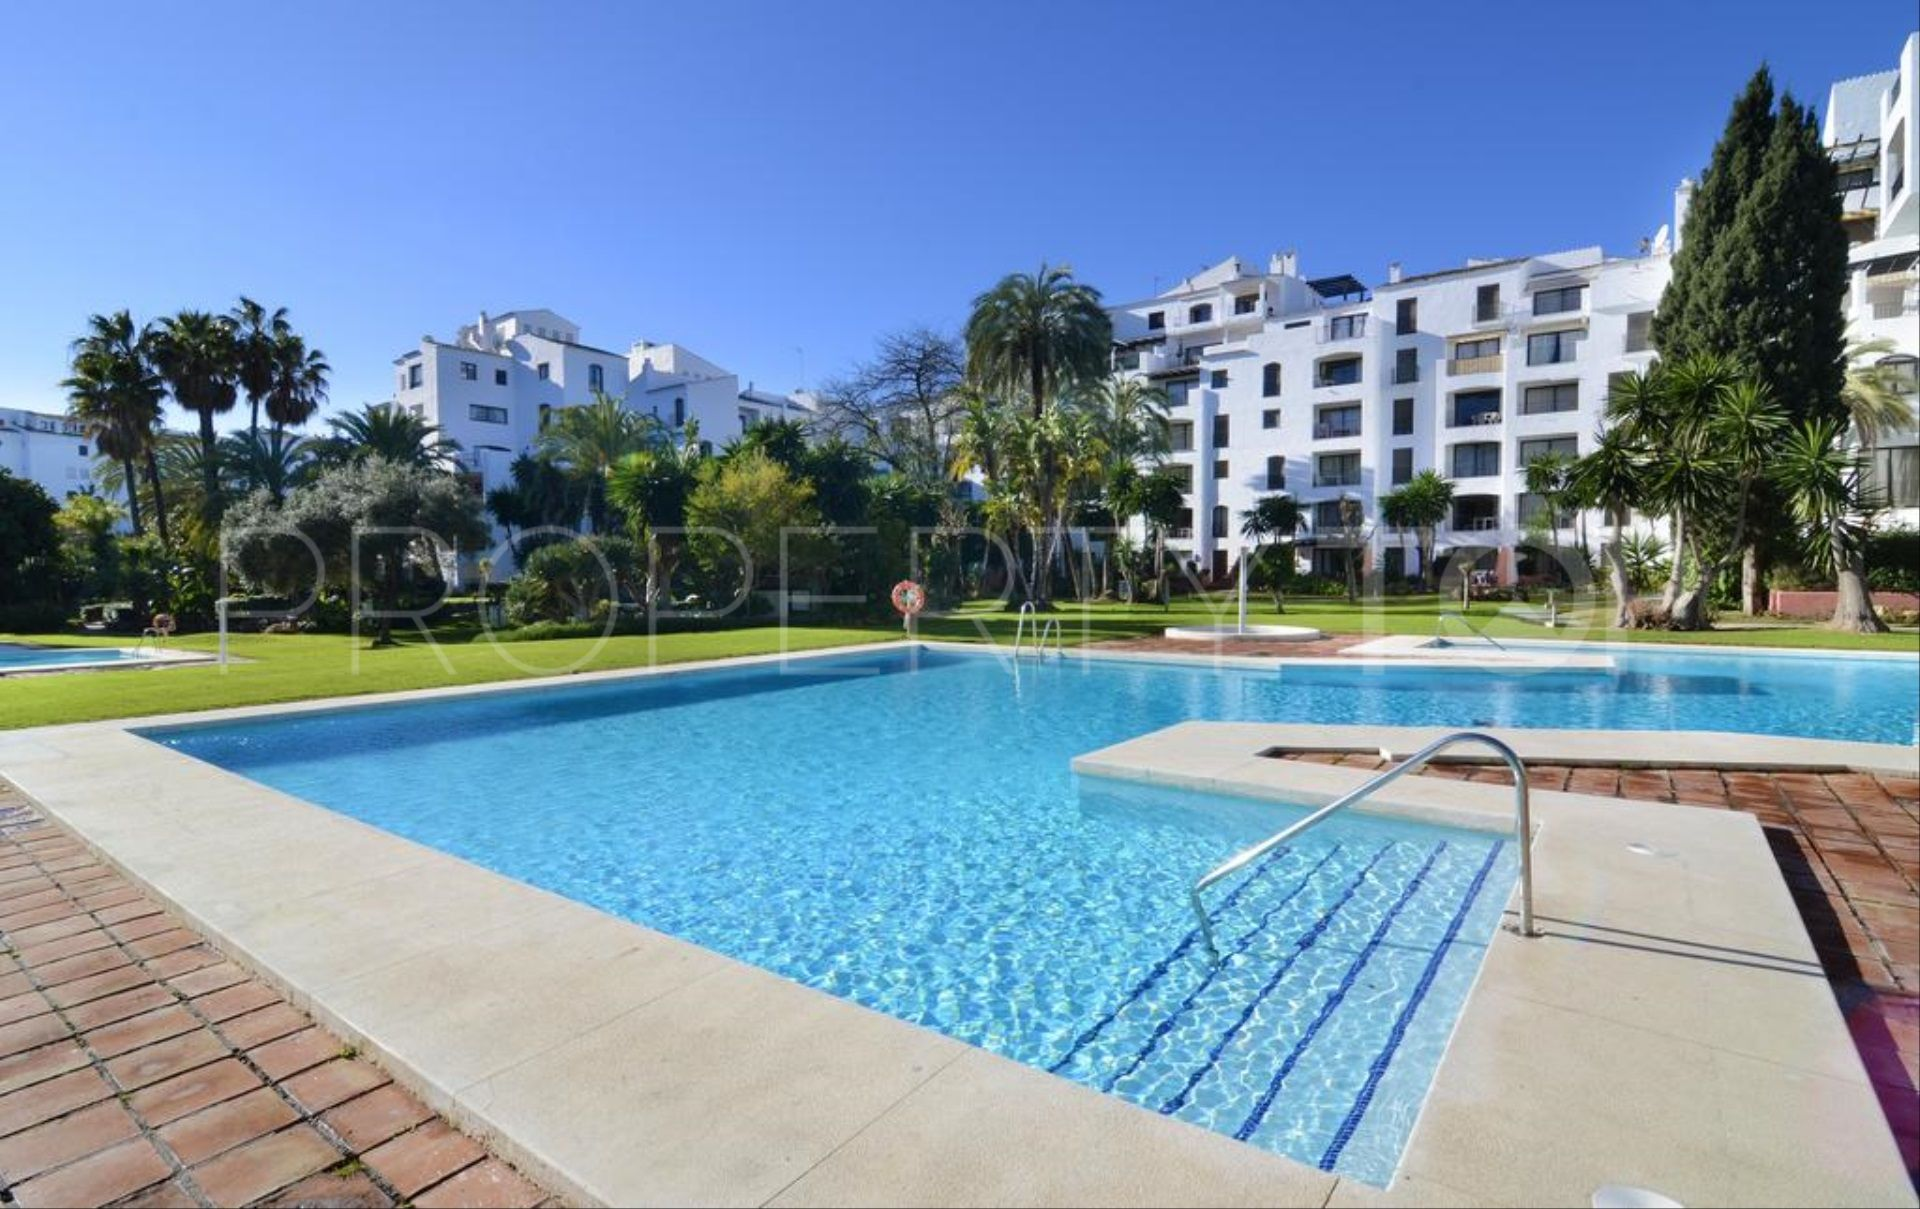 3 bedrooms jardines del puerto apartment nevado realty for Jardines del puerto